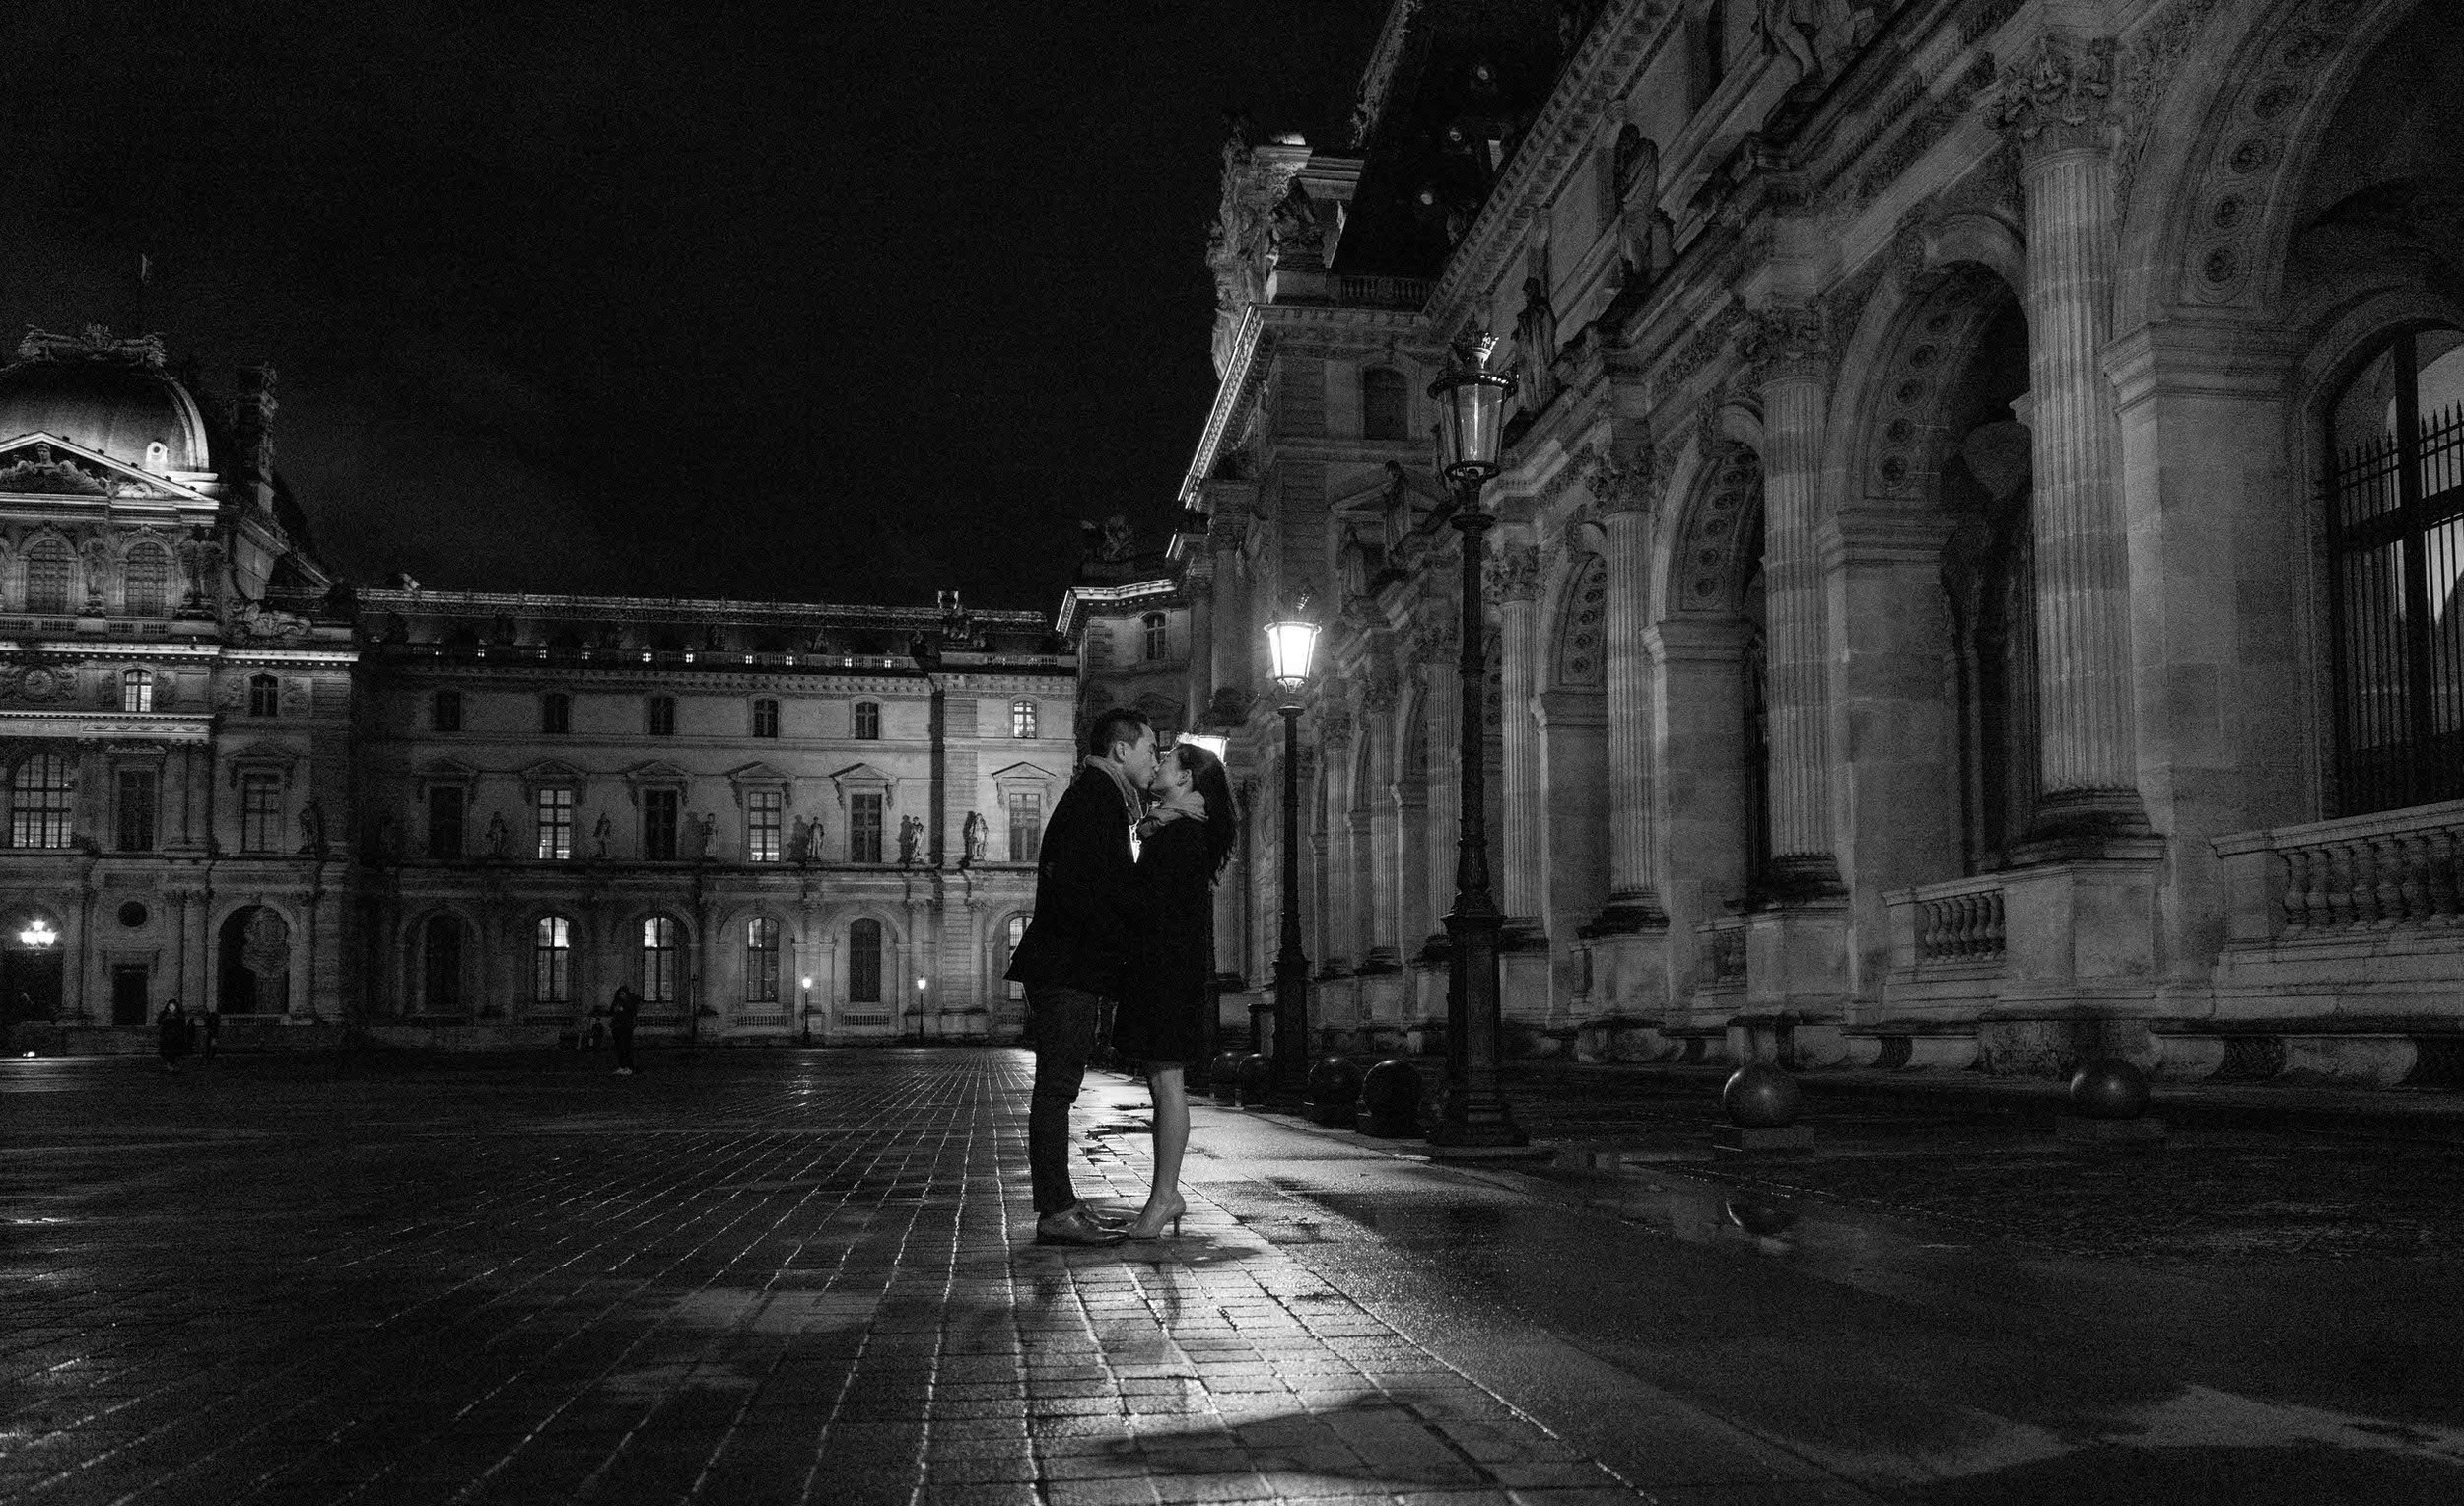 Romantic and elegant black and white night photo experience at the Louvre Museum